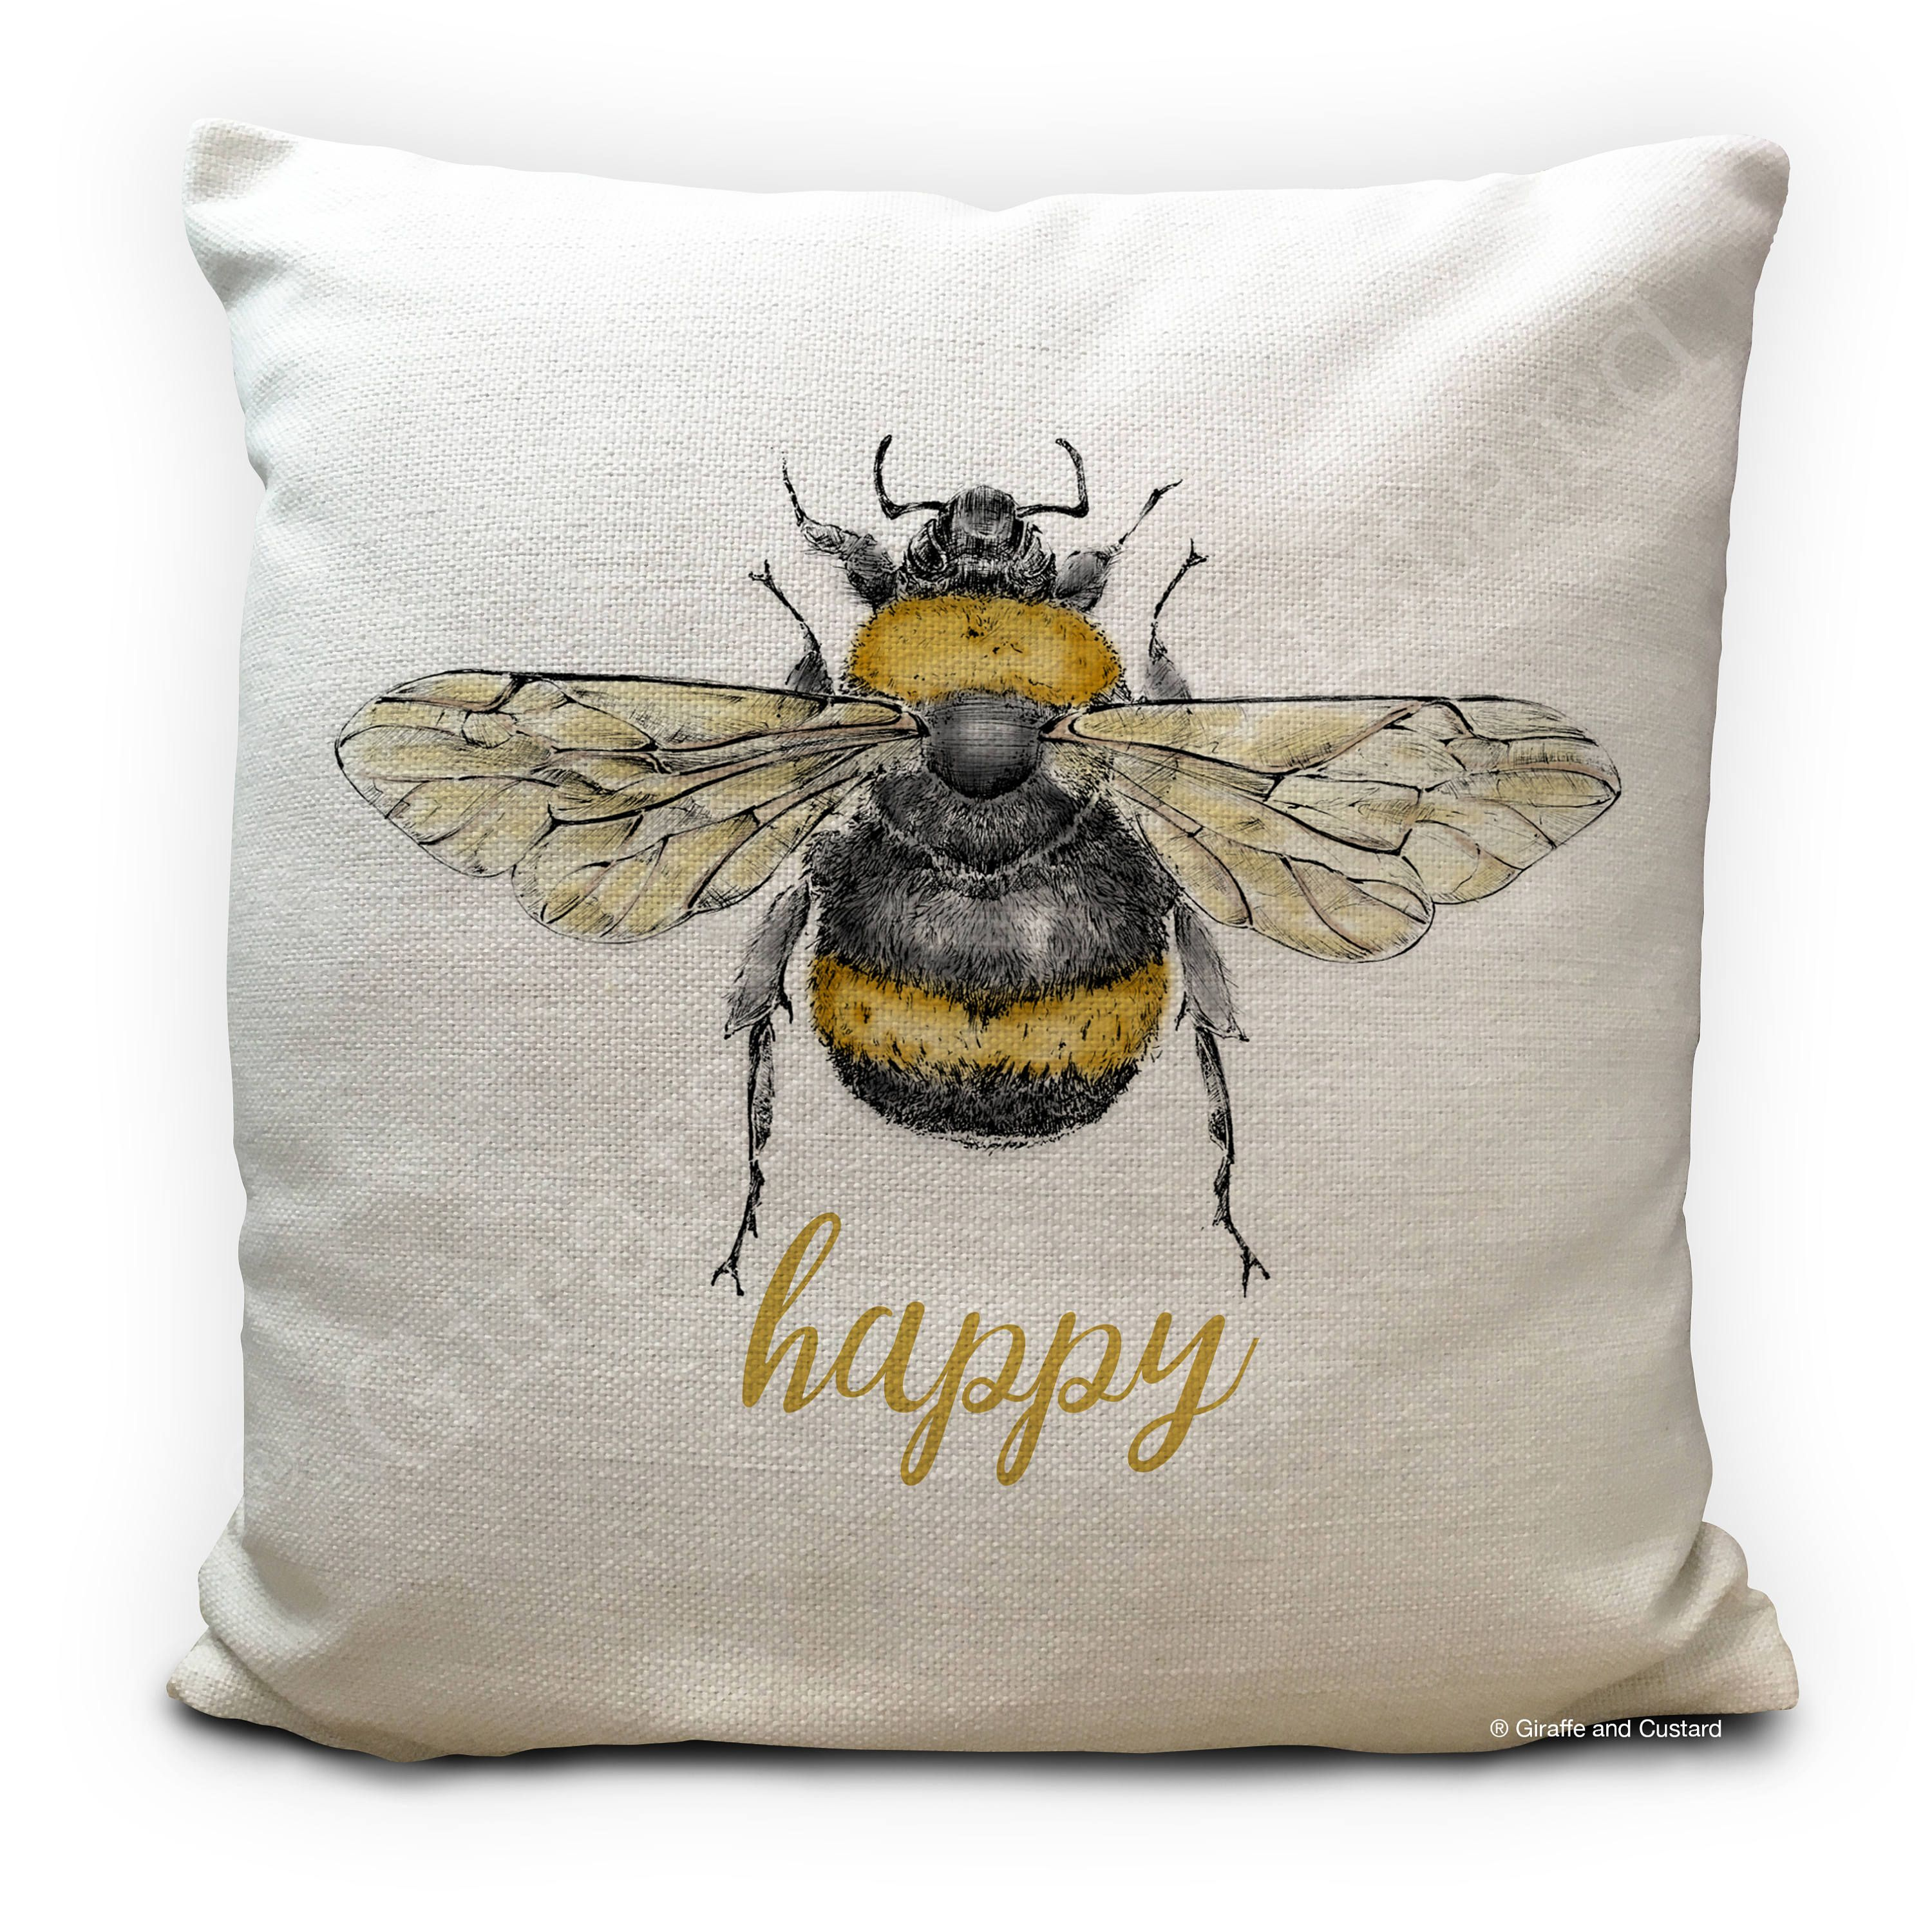 Bee Cushion Pillow Cover Hy Be Honey Ble Vintage Ilration